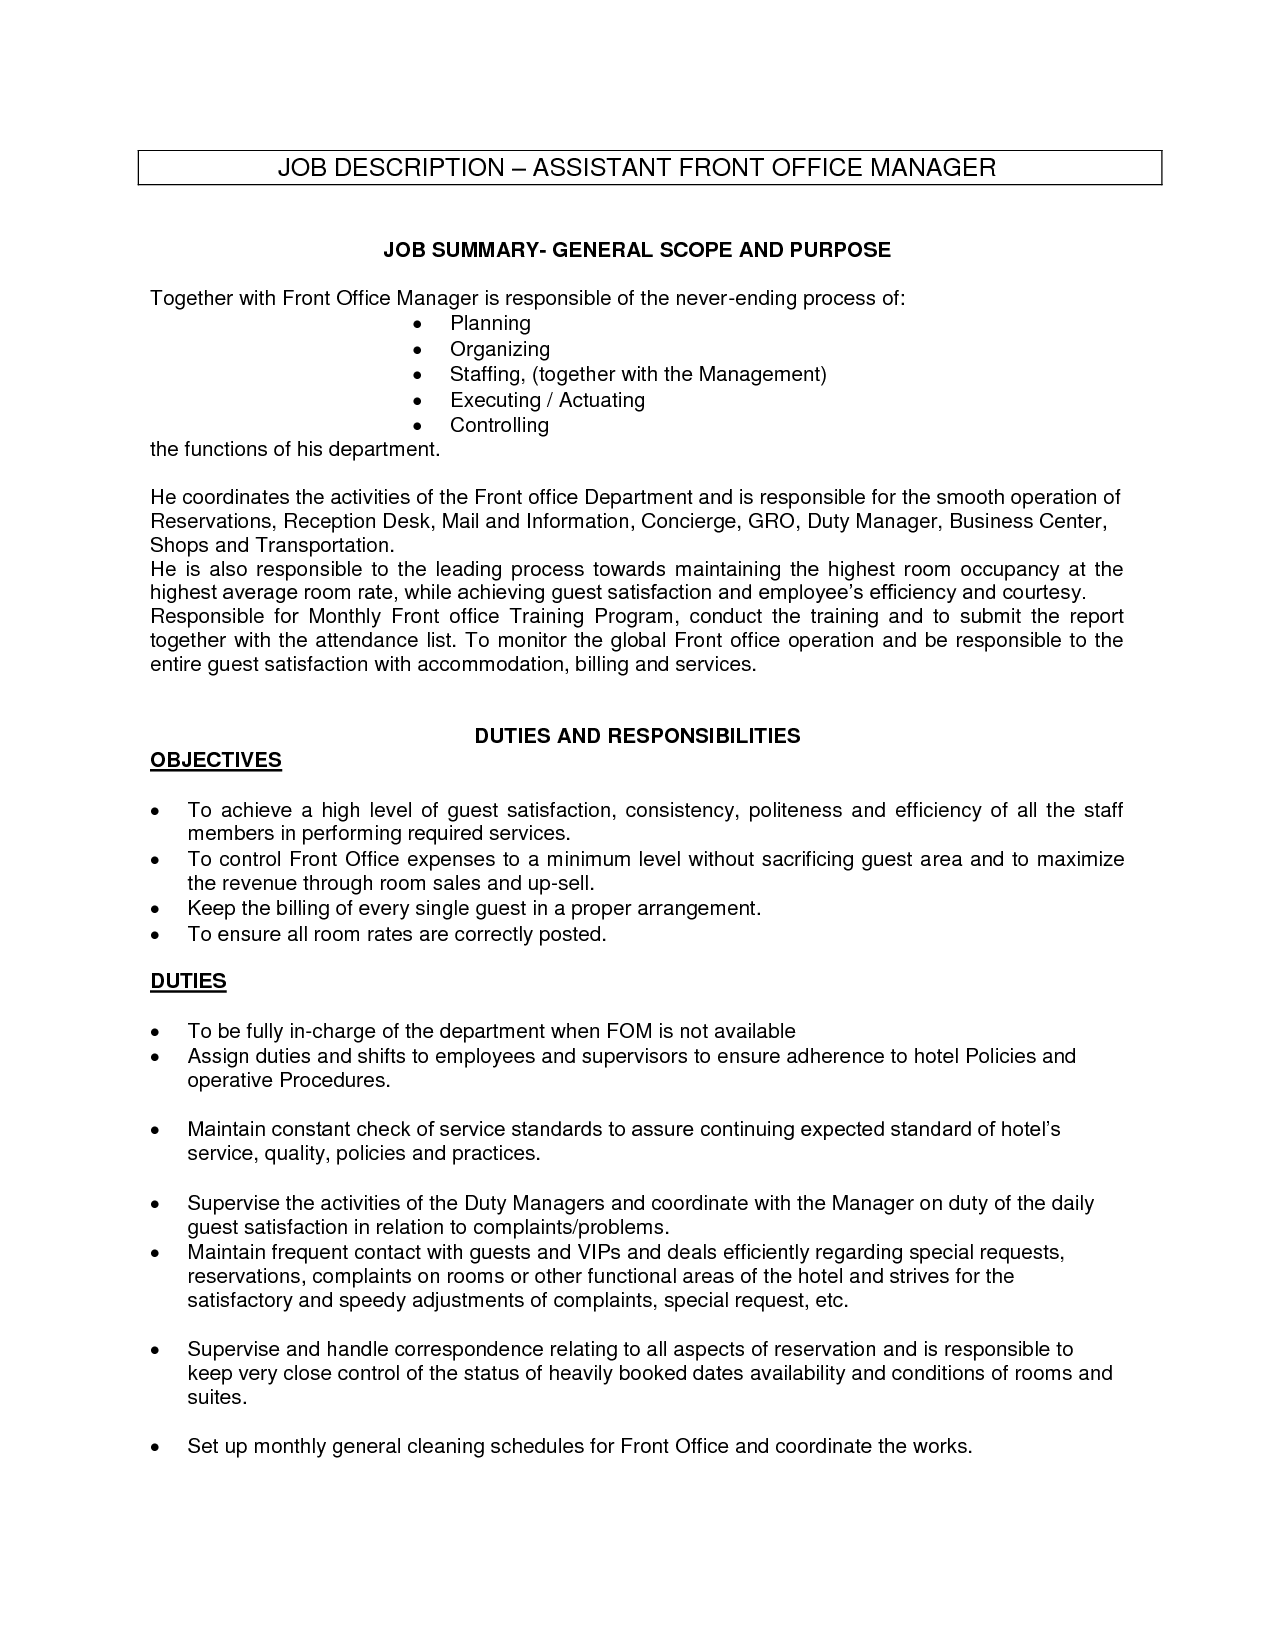 front office manager job description office assistant job description - Office Manager Job Description For Resume